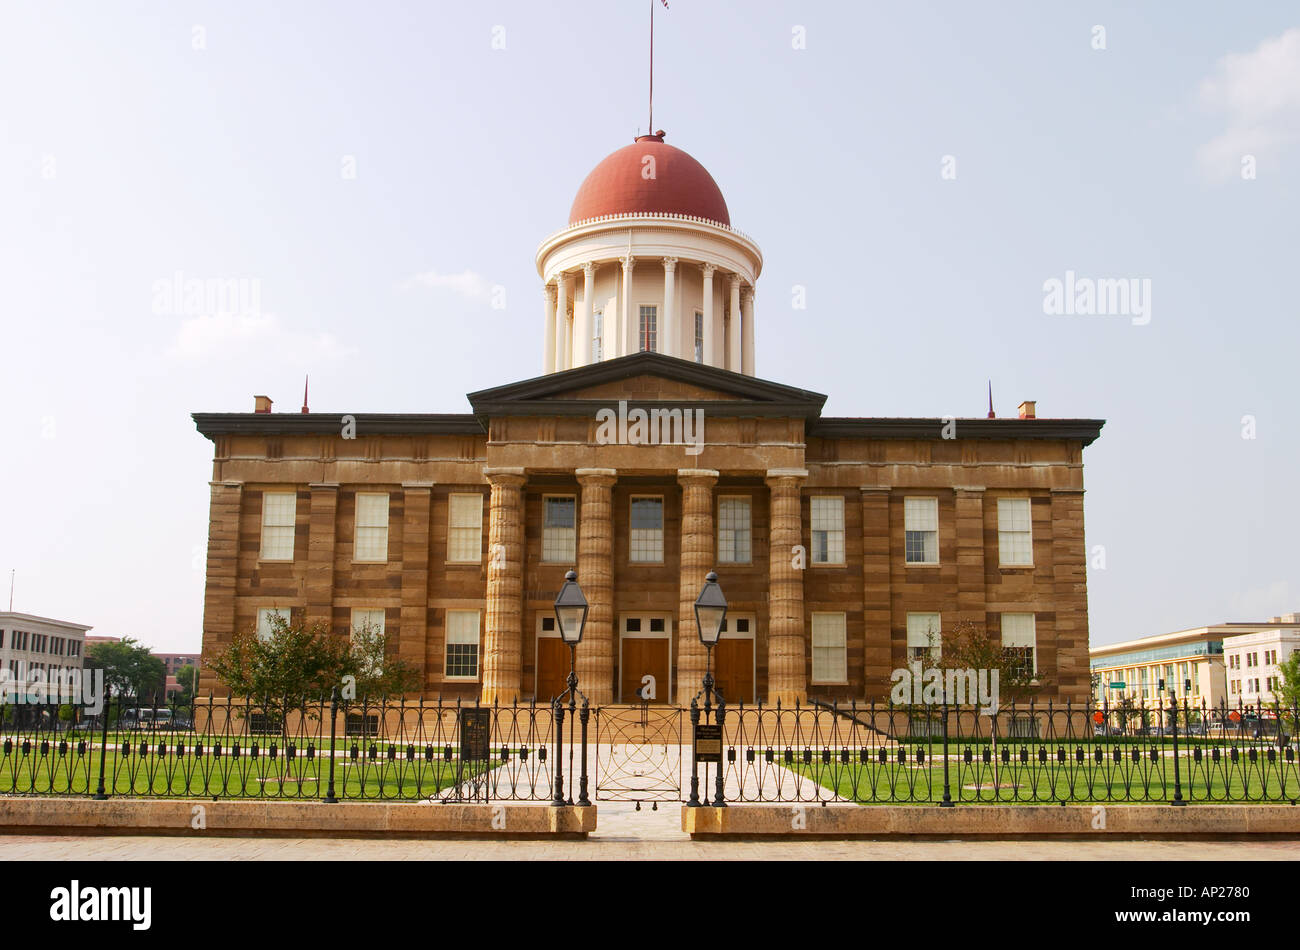 ILLINOIS Springfield Old State Capitol statehouse from 1839 to 1876 exterior wire fence  - Stock Image